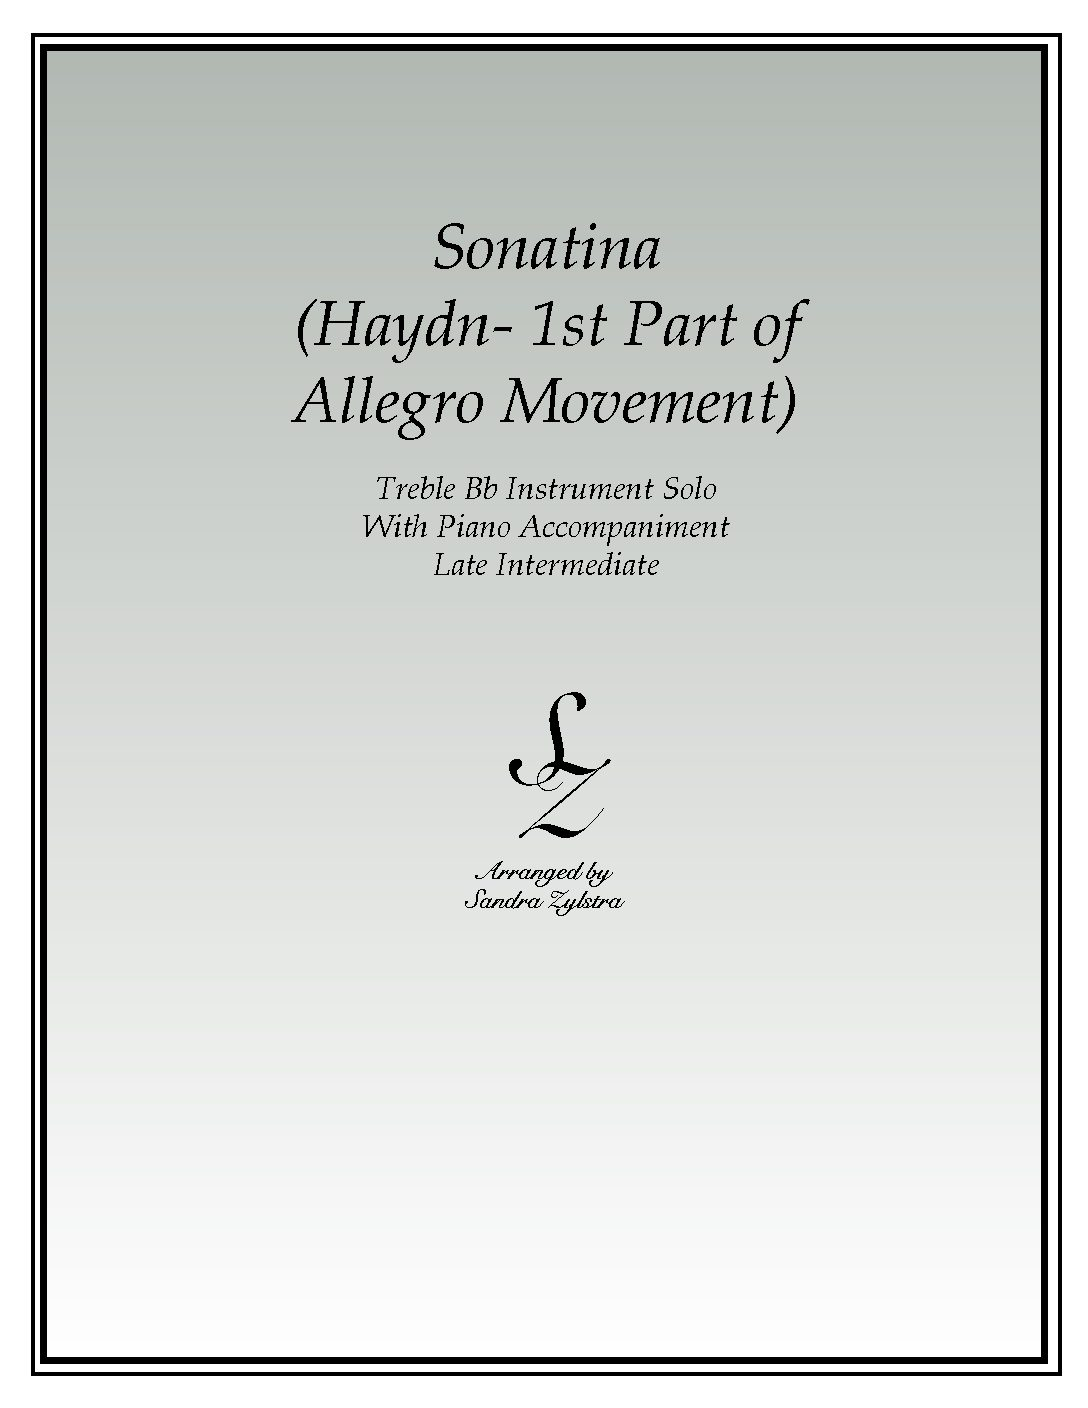 IS 59 Sonatina Haydn 1st part of Allegro Movement 01 Treble Bb pdf